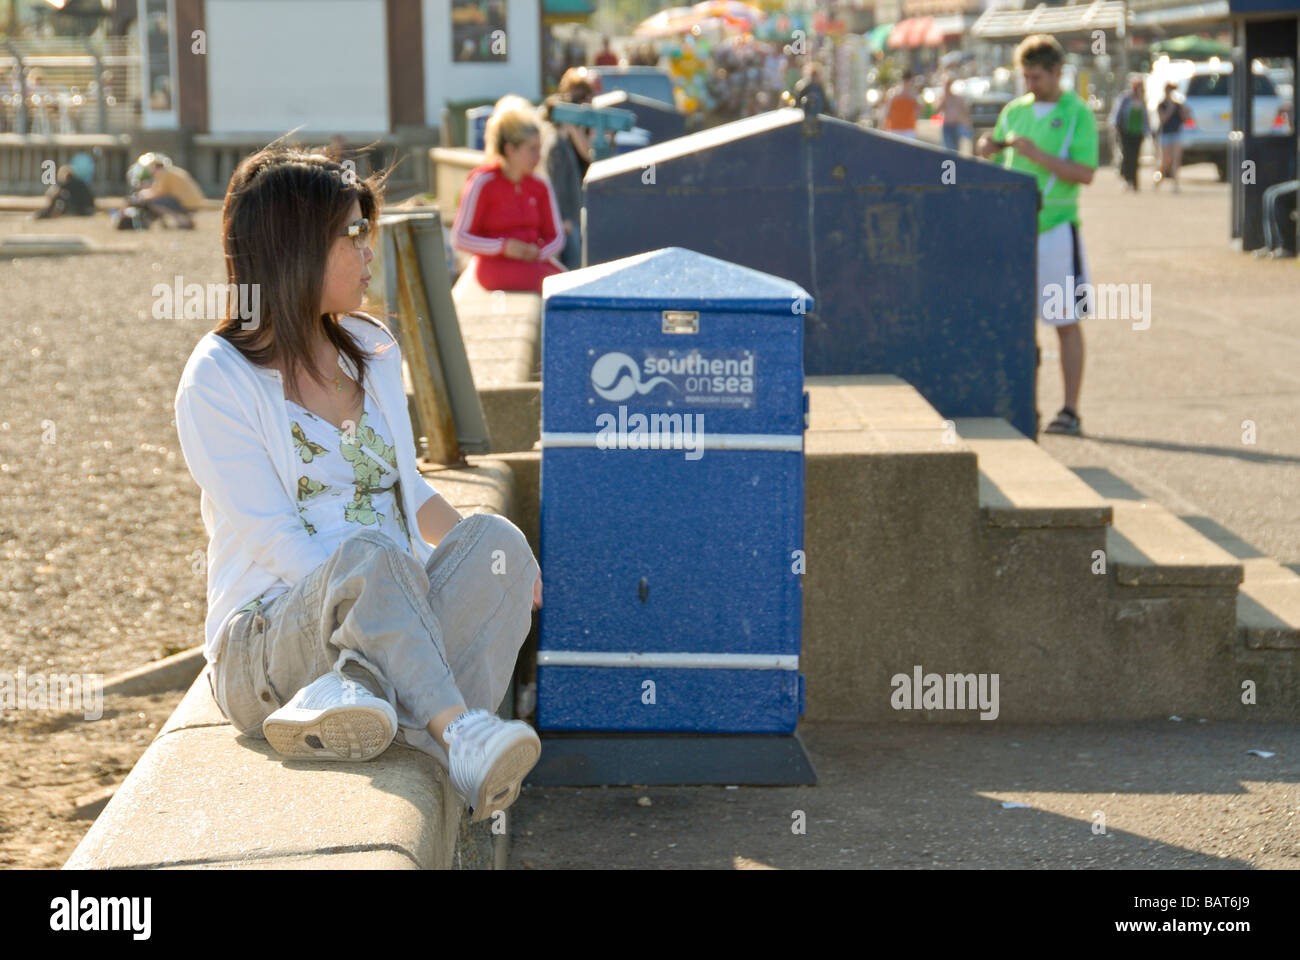 Woman relaxing Southend on Sea Essex England UK Stock Photo